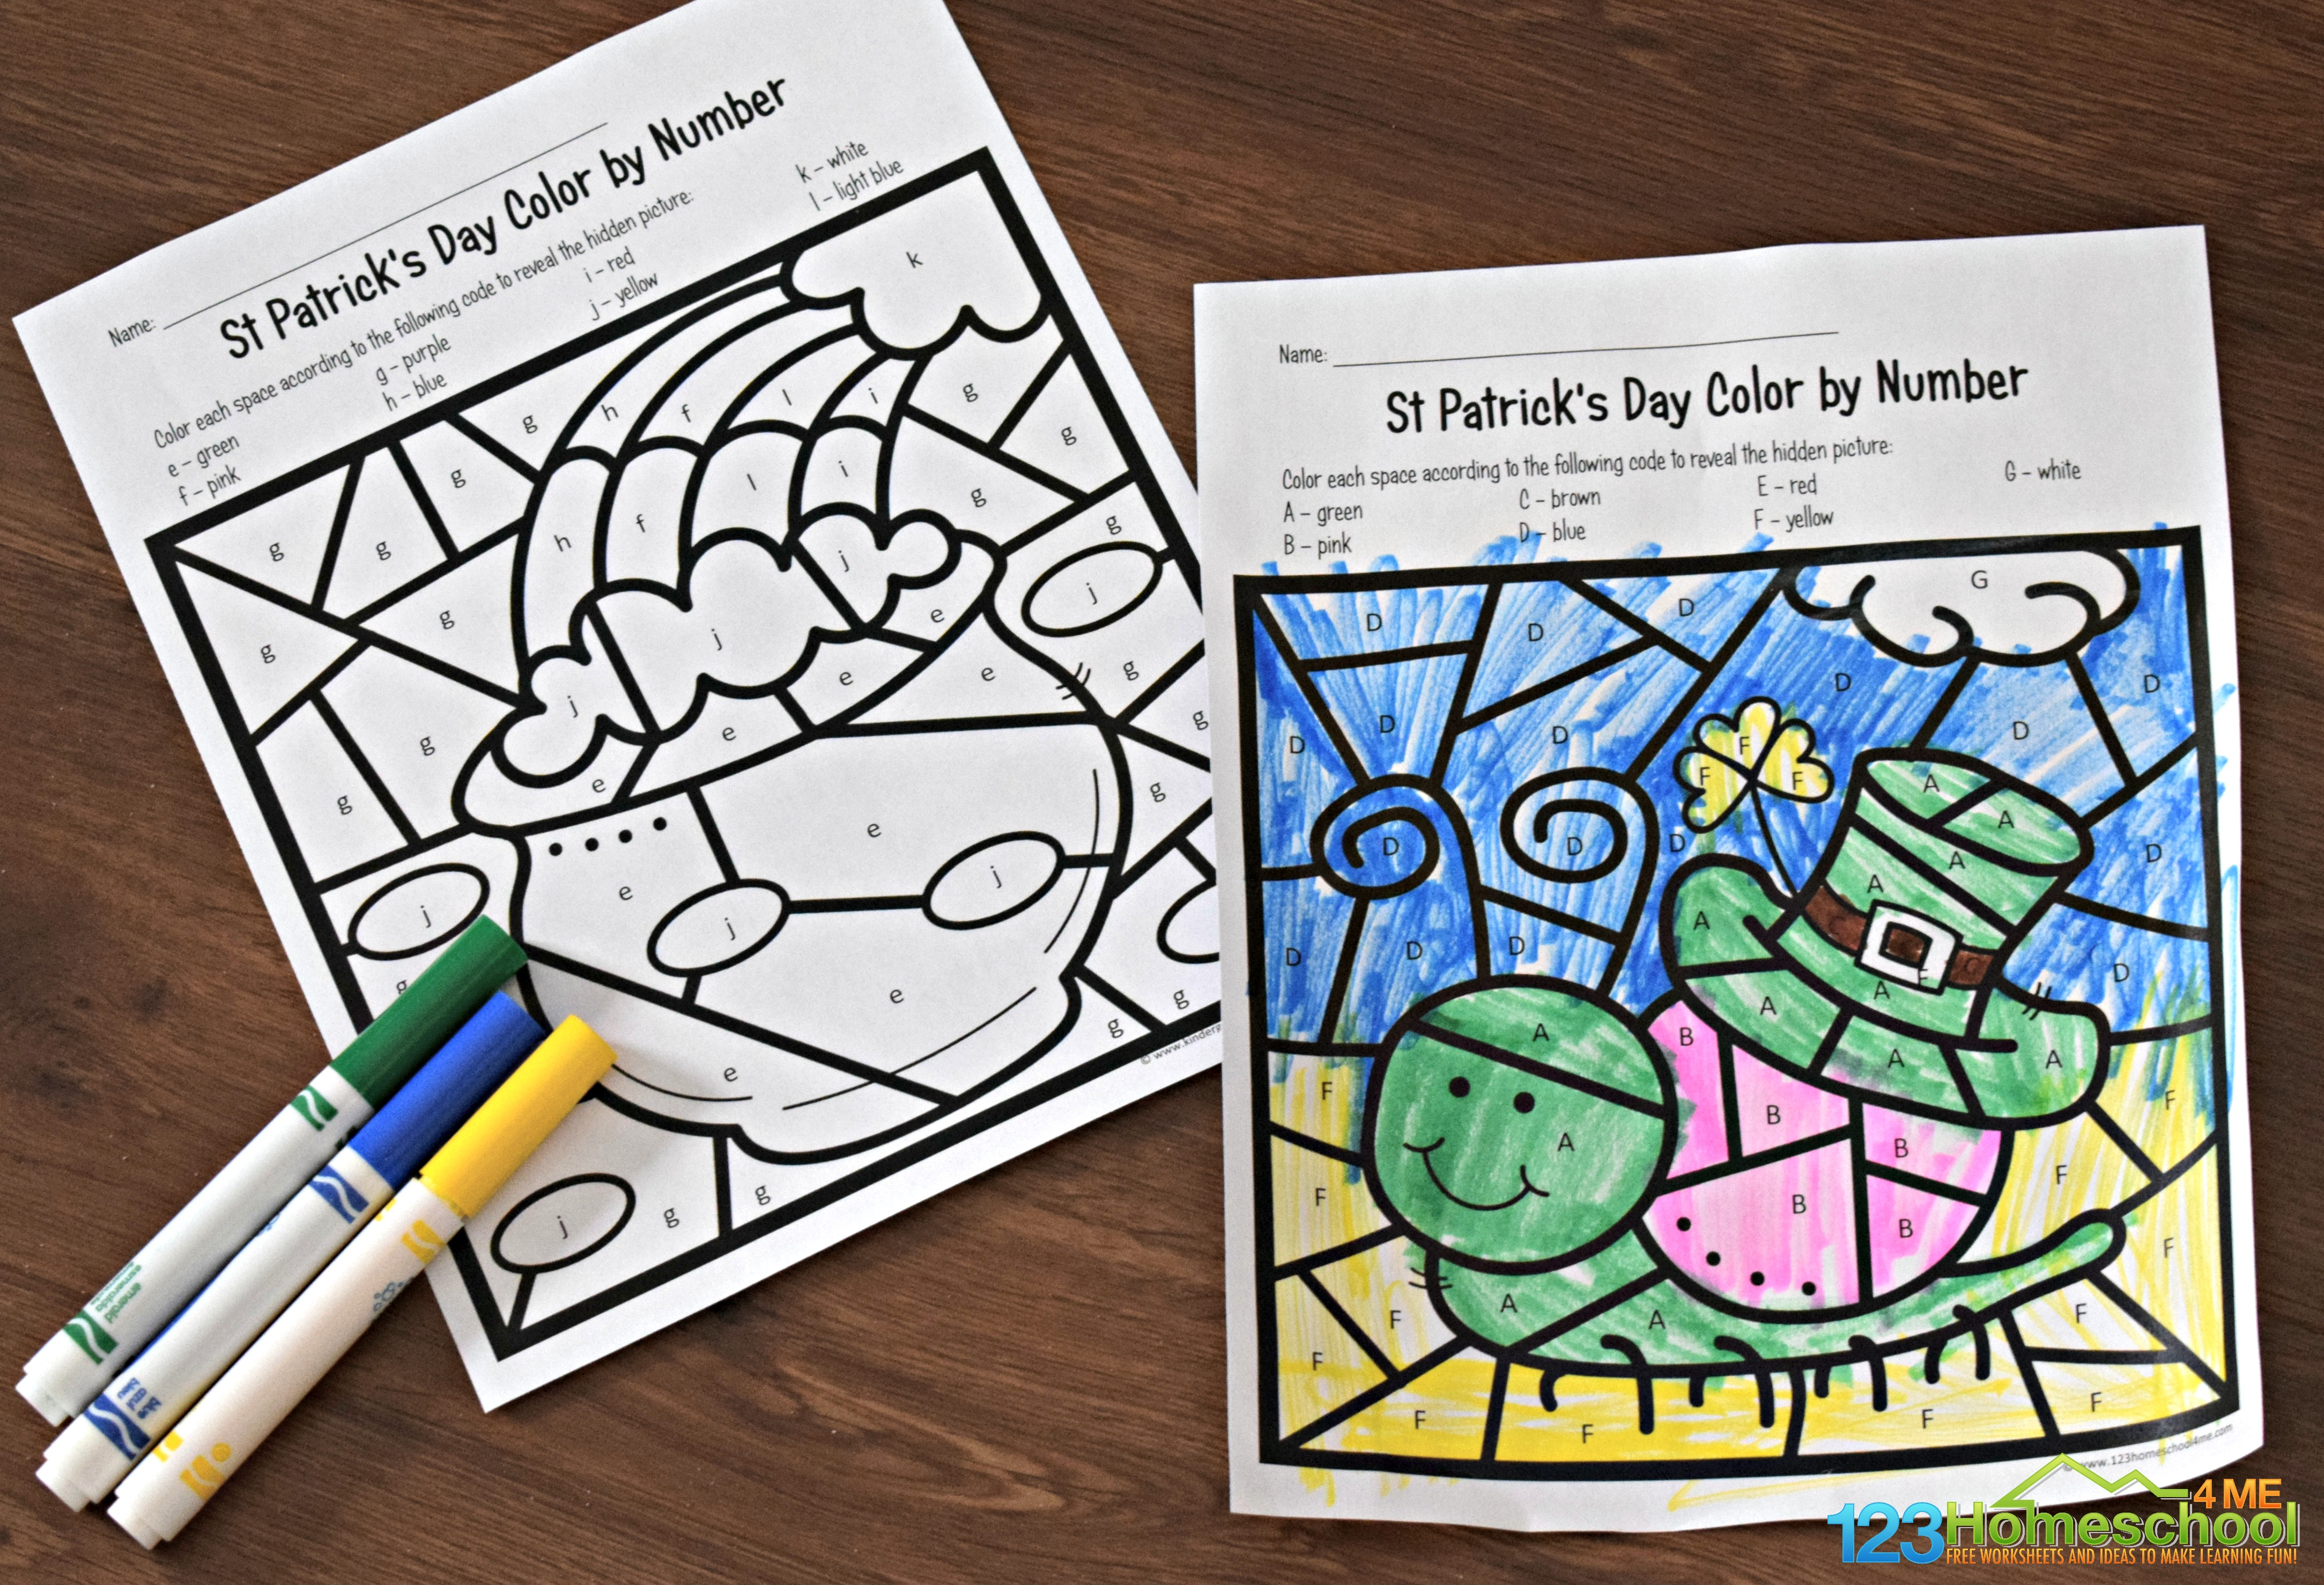 100 St. Patrick's Day Coloring Pages by mason1921 - issuu   1024x1501